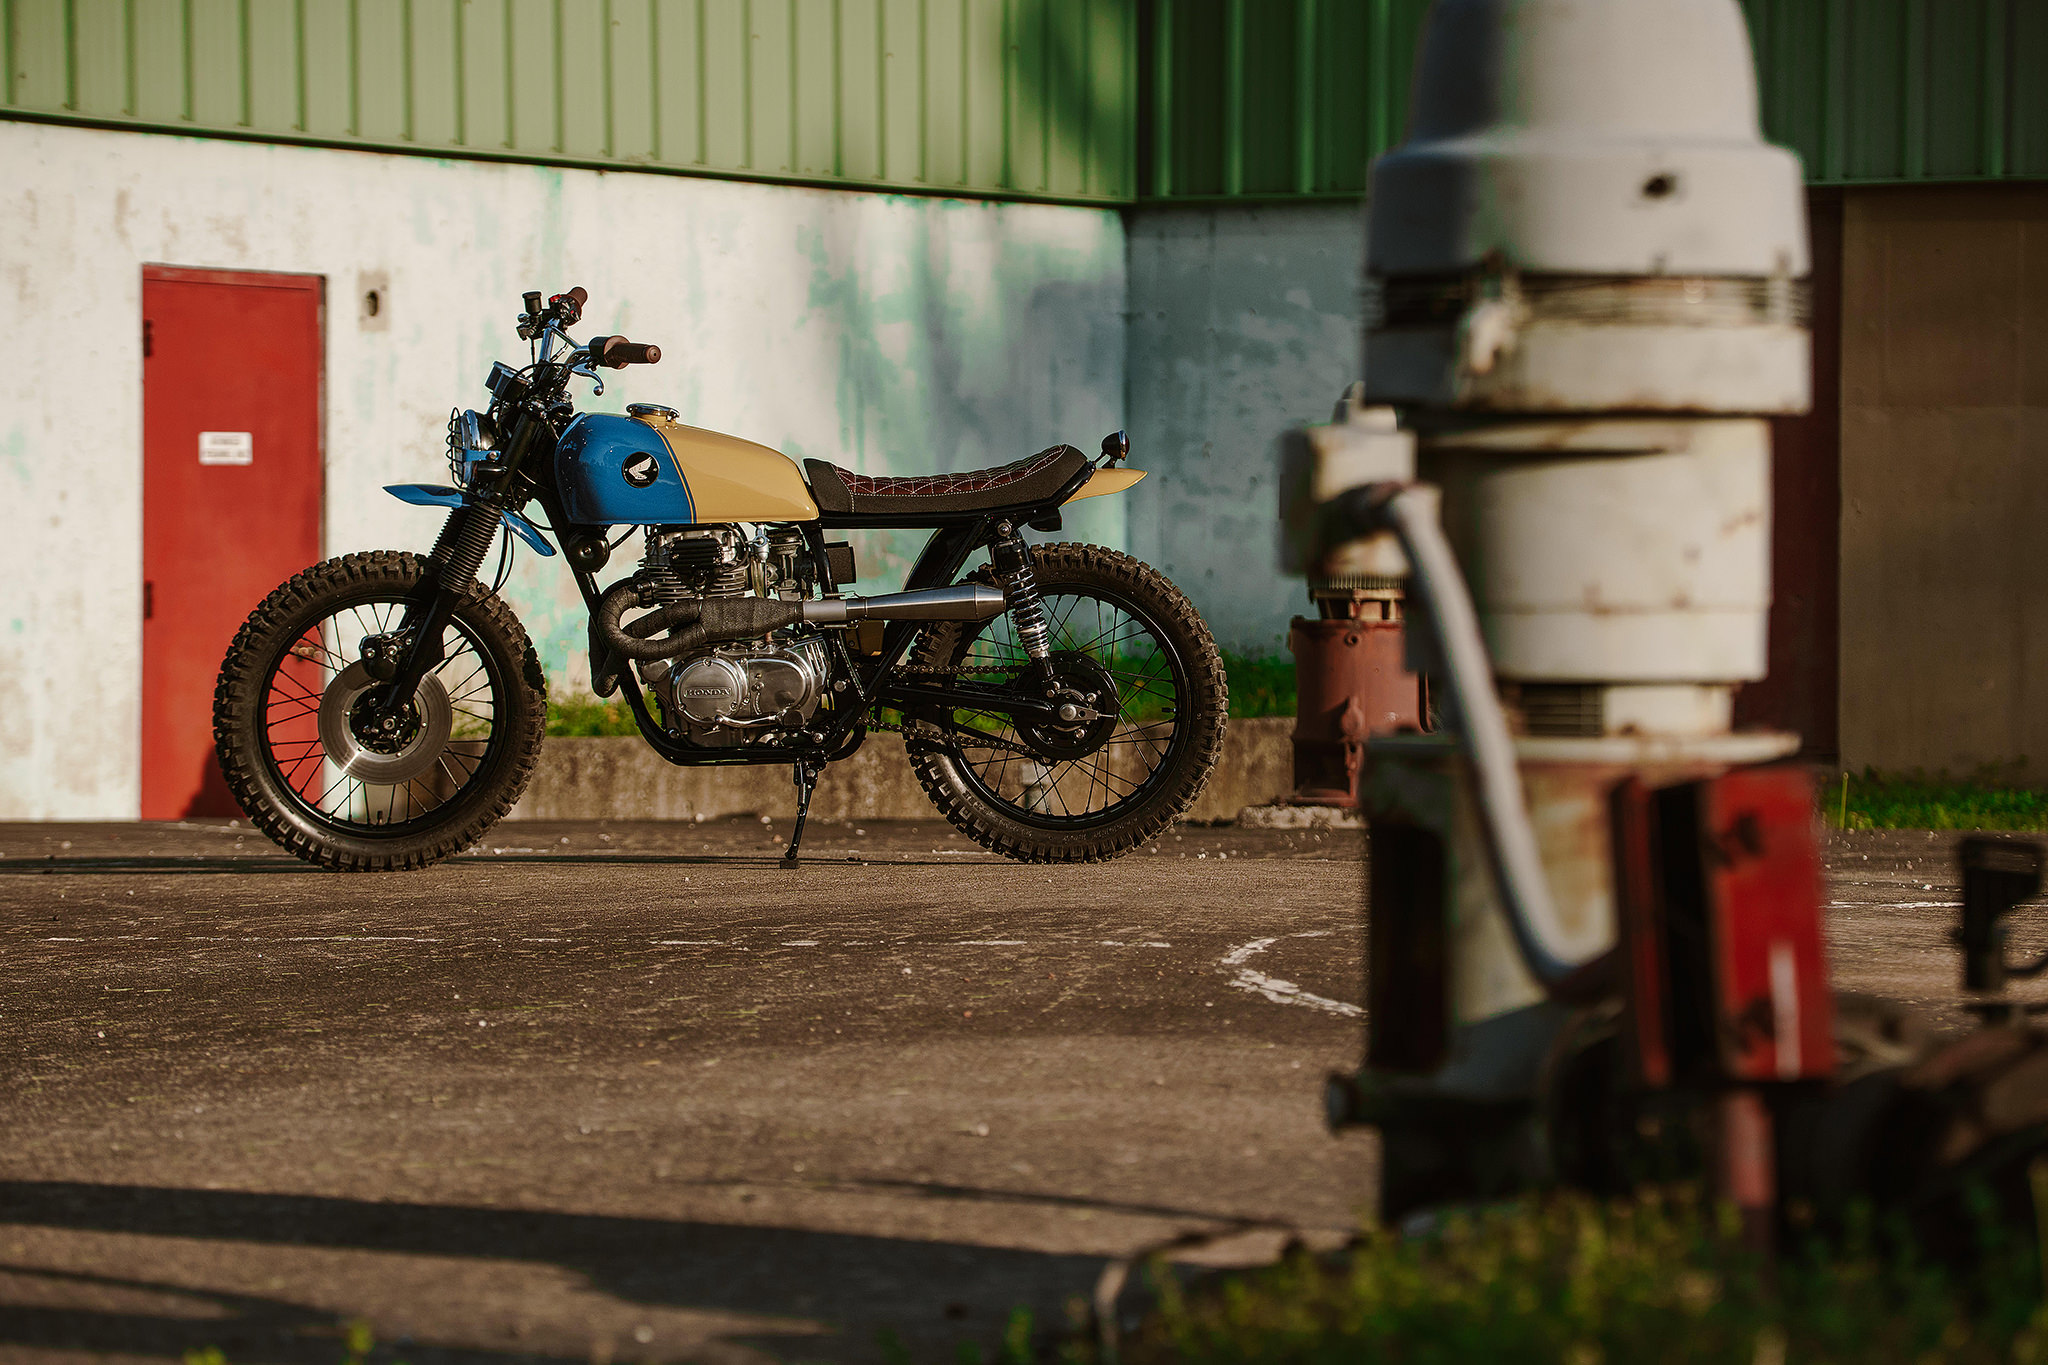 BJ Scrambler, Outdoor - 18.jpg